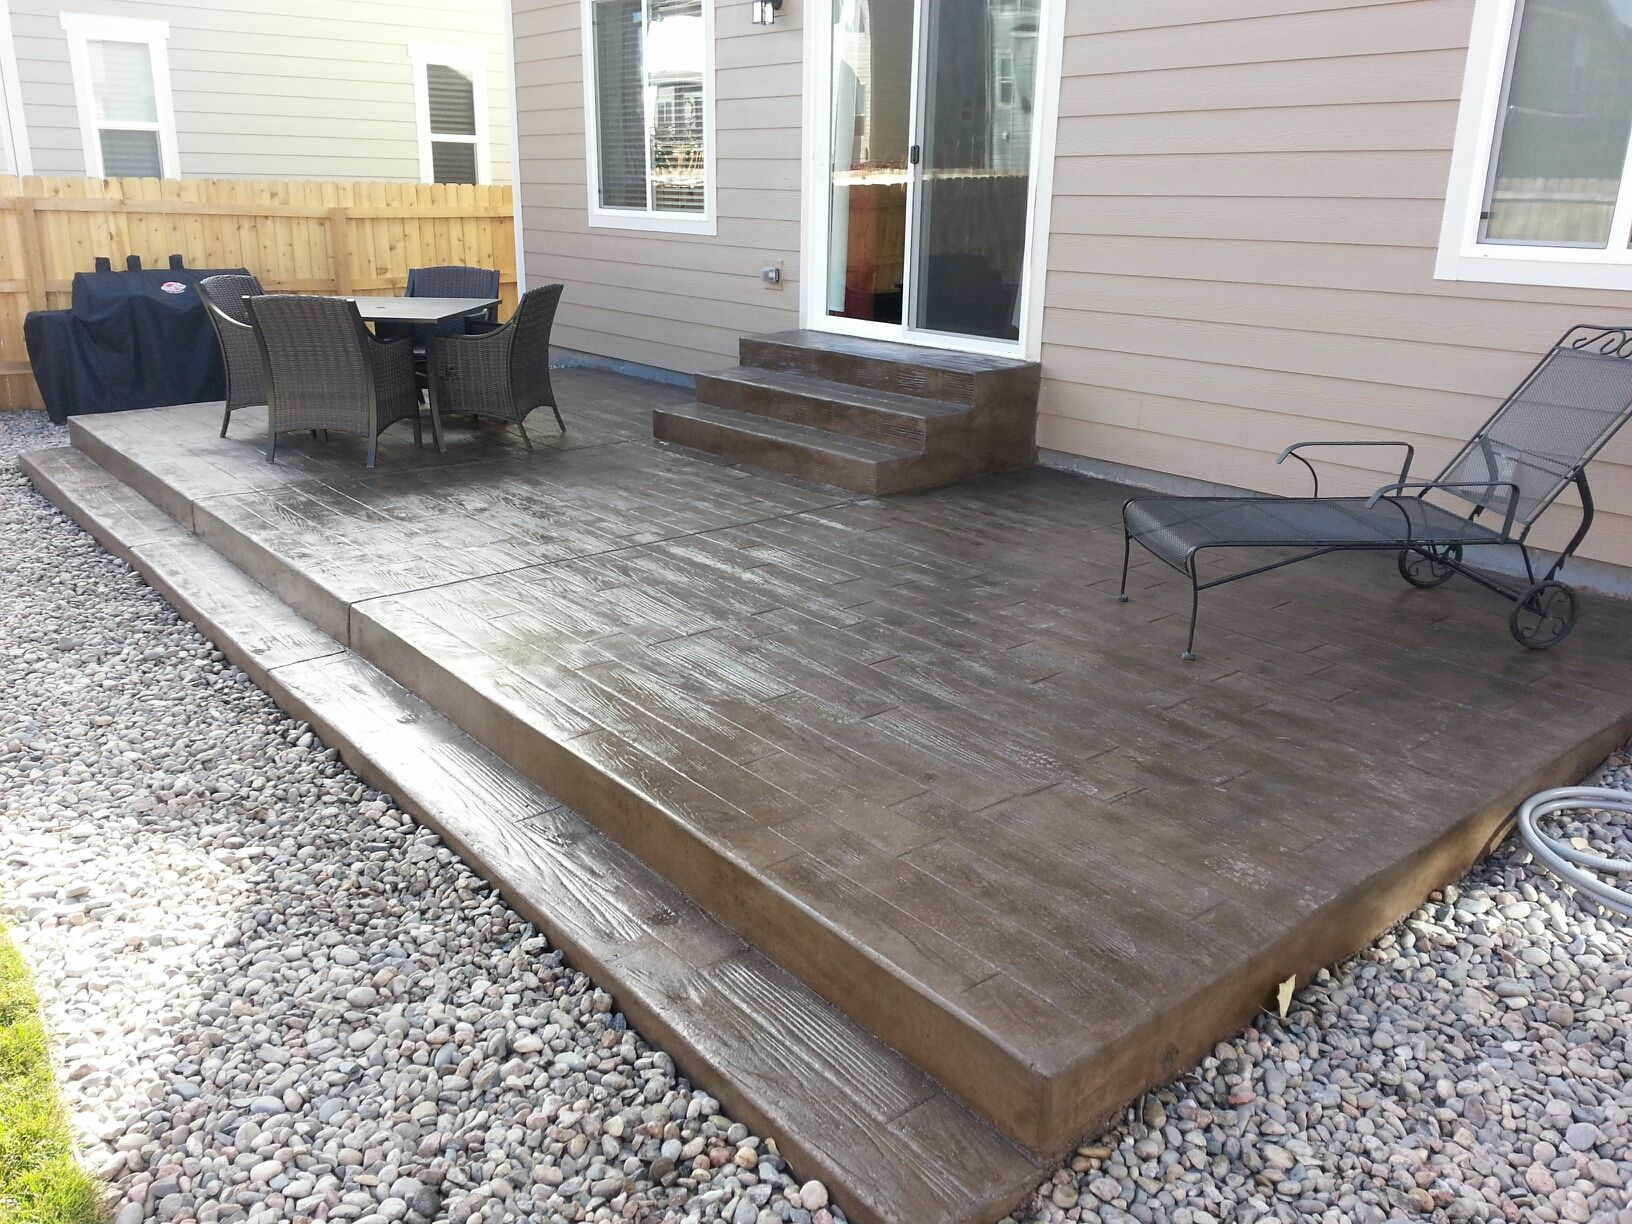 Wood Grain Texture Stamped Concrete Patio Amp Steps